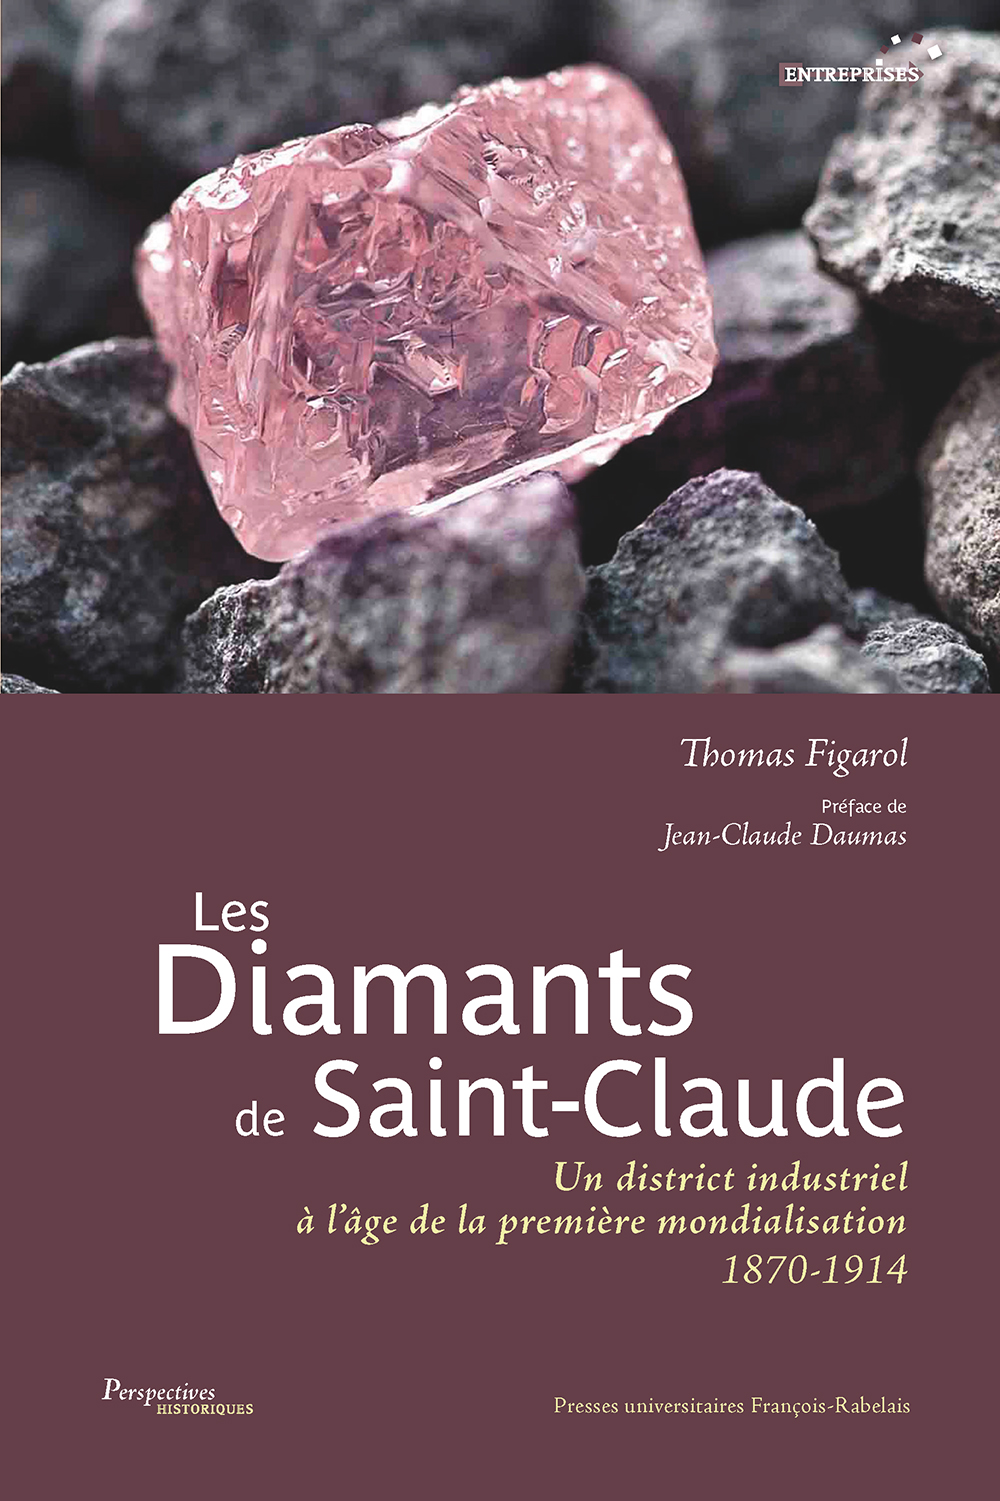 Les diamants de Saint-Claude